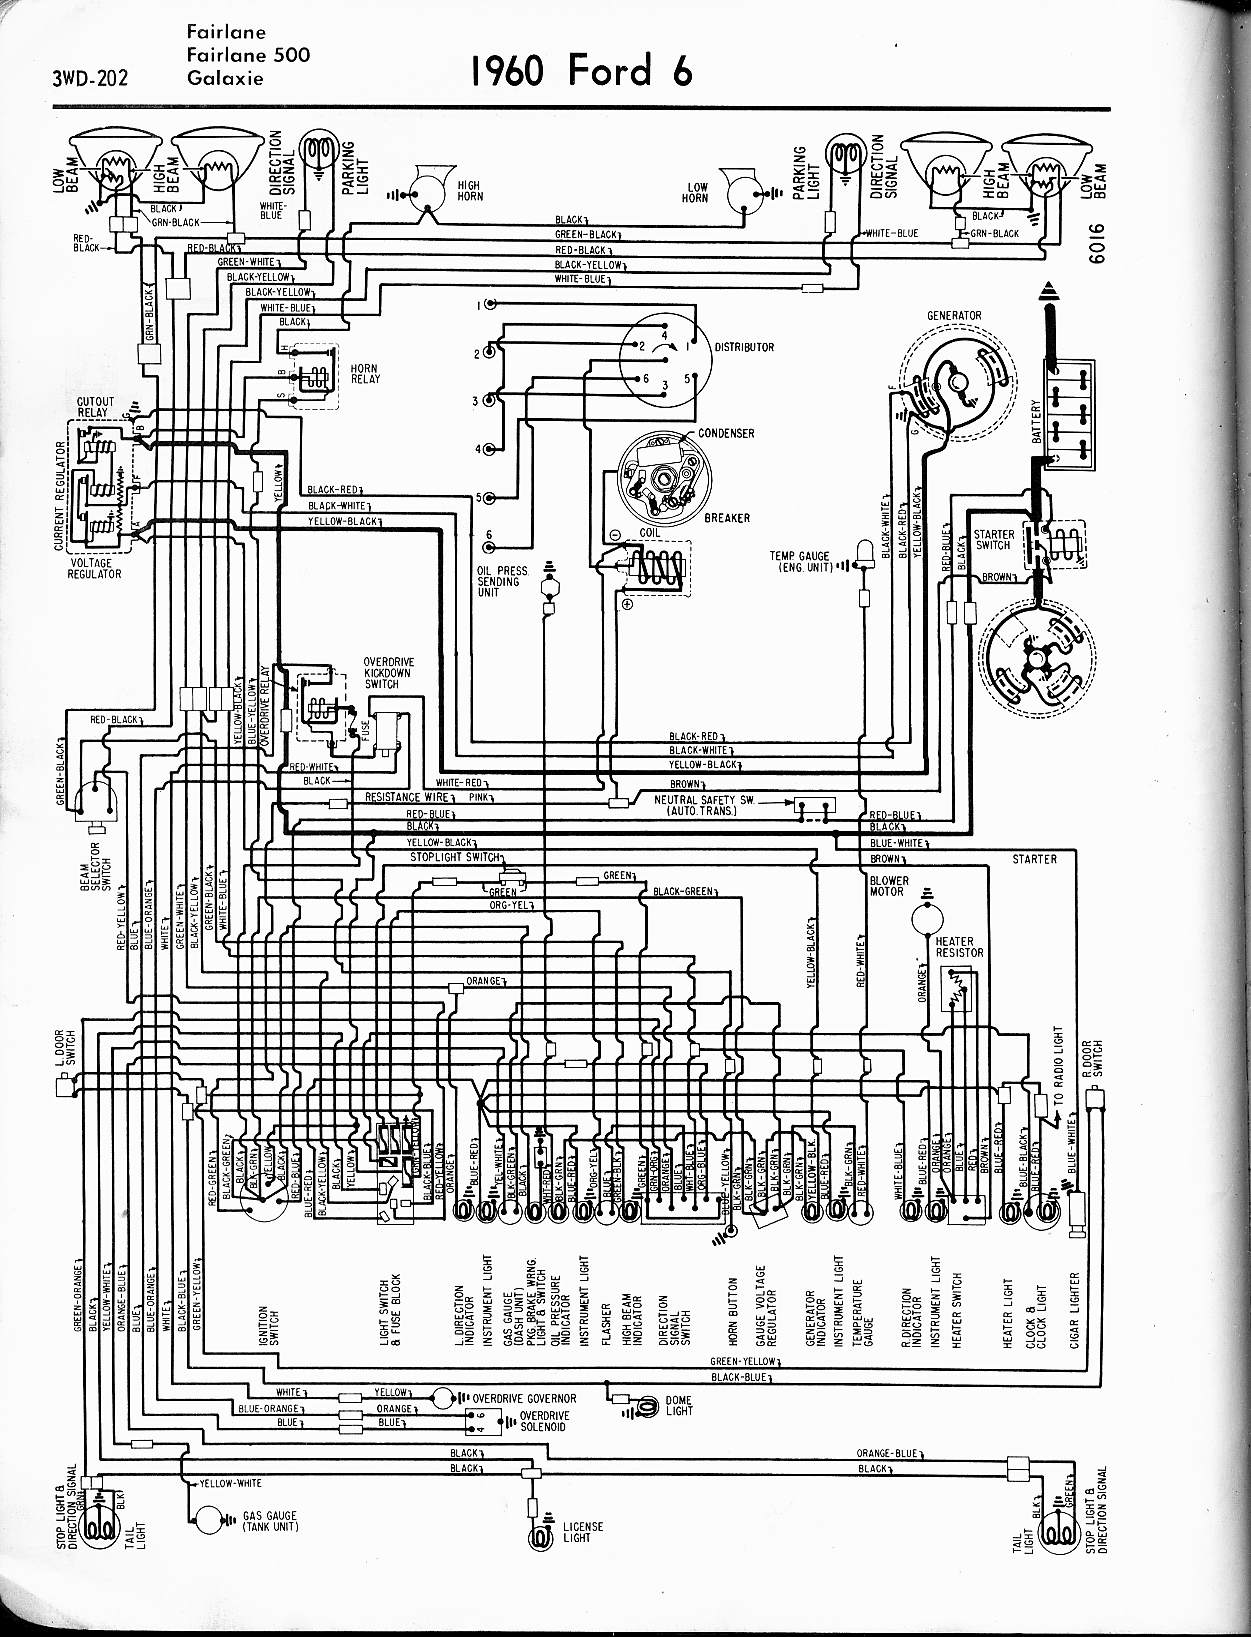 hight resolution of 57 65 ford wiring diagrams 1960 6 cyl fairlane 500 galaxie